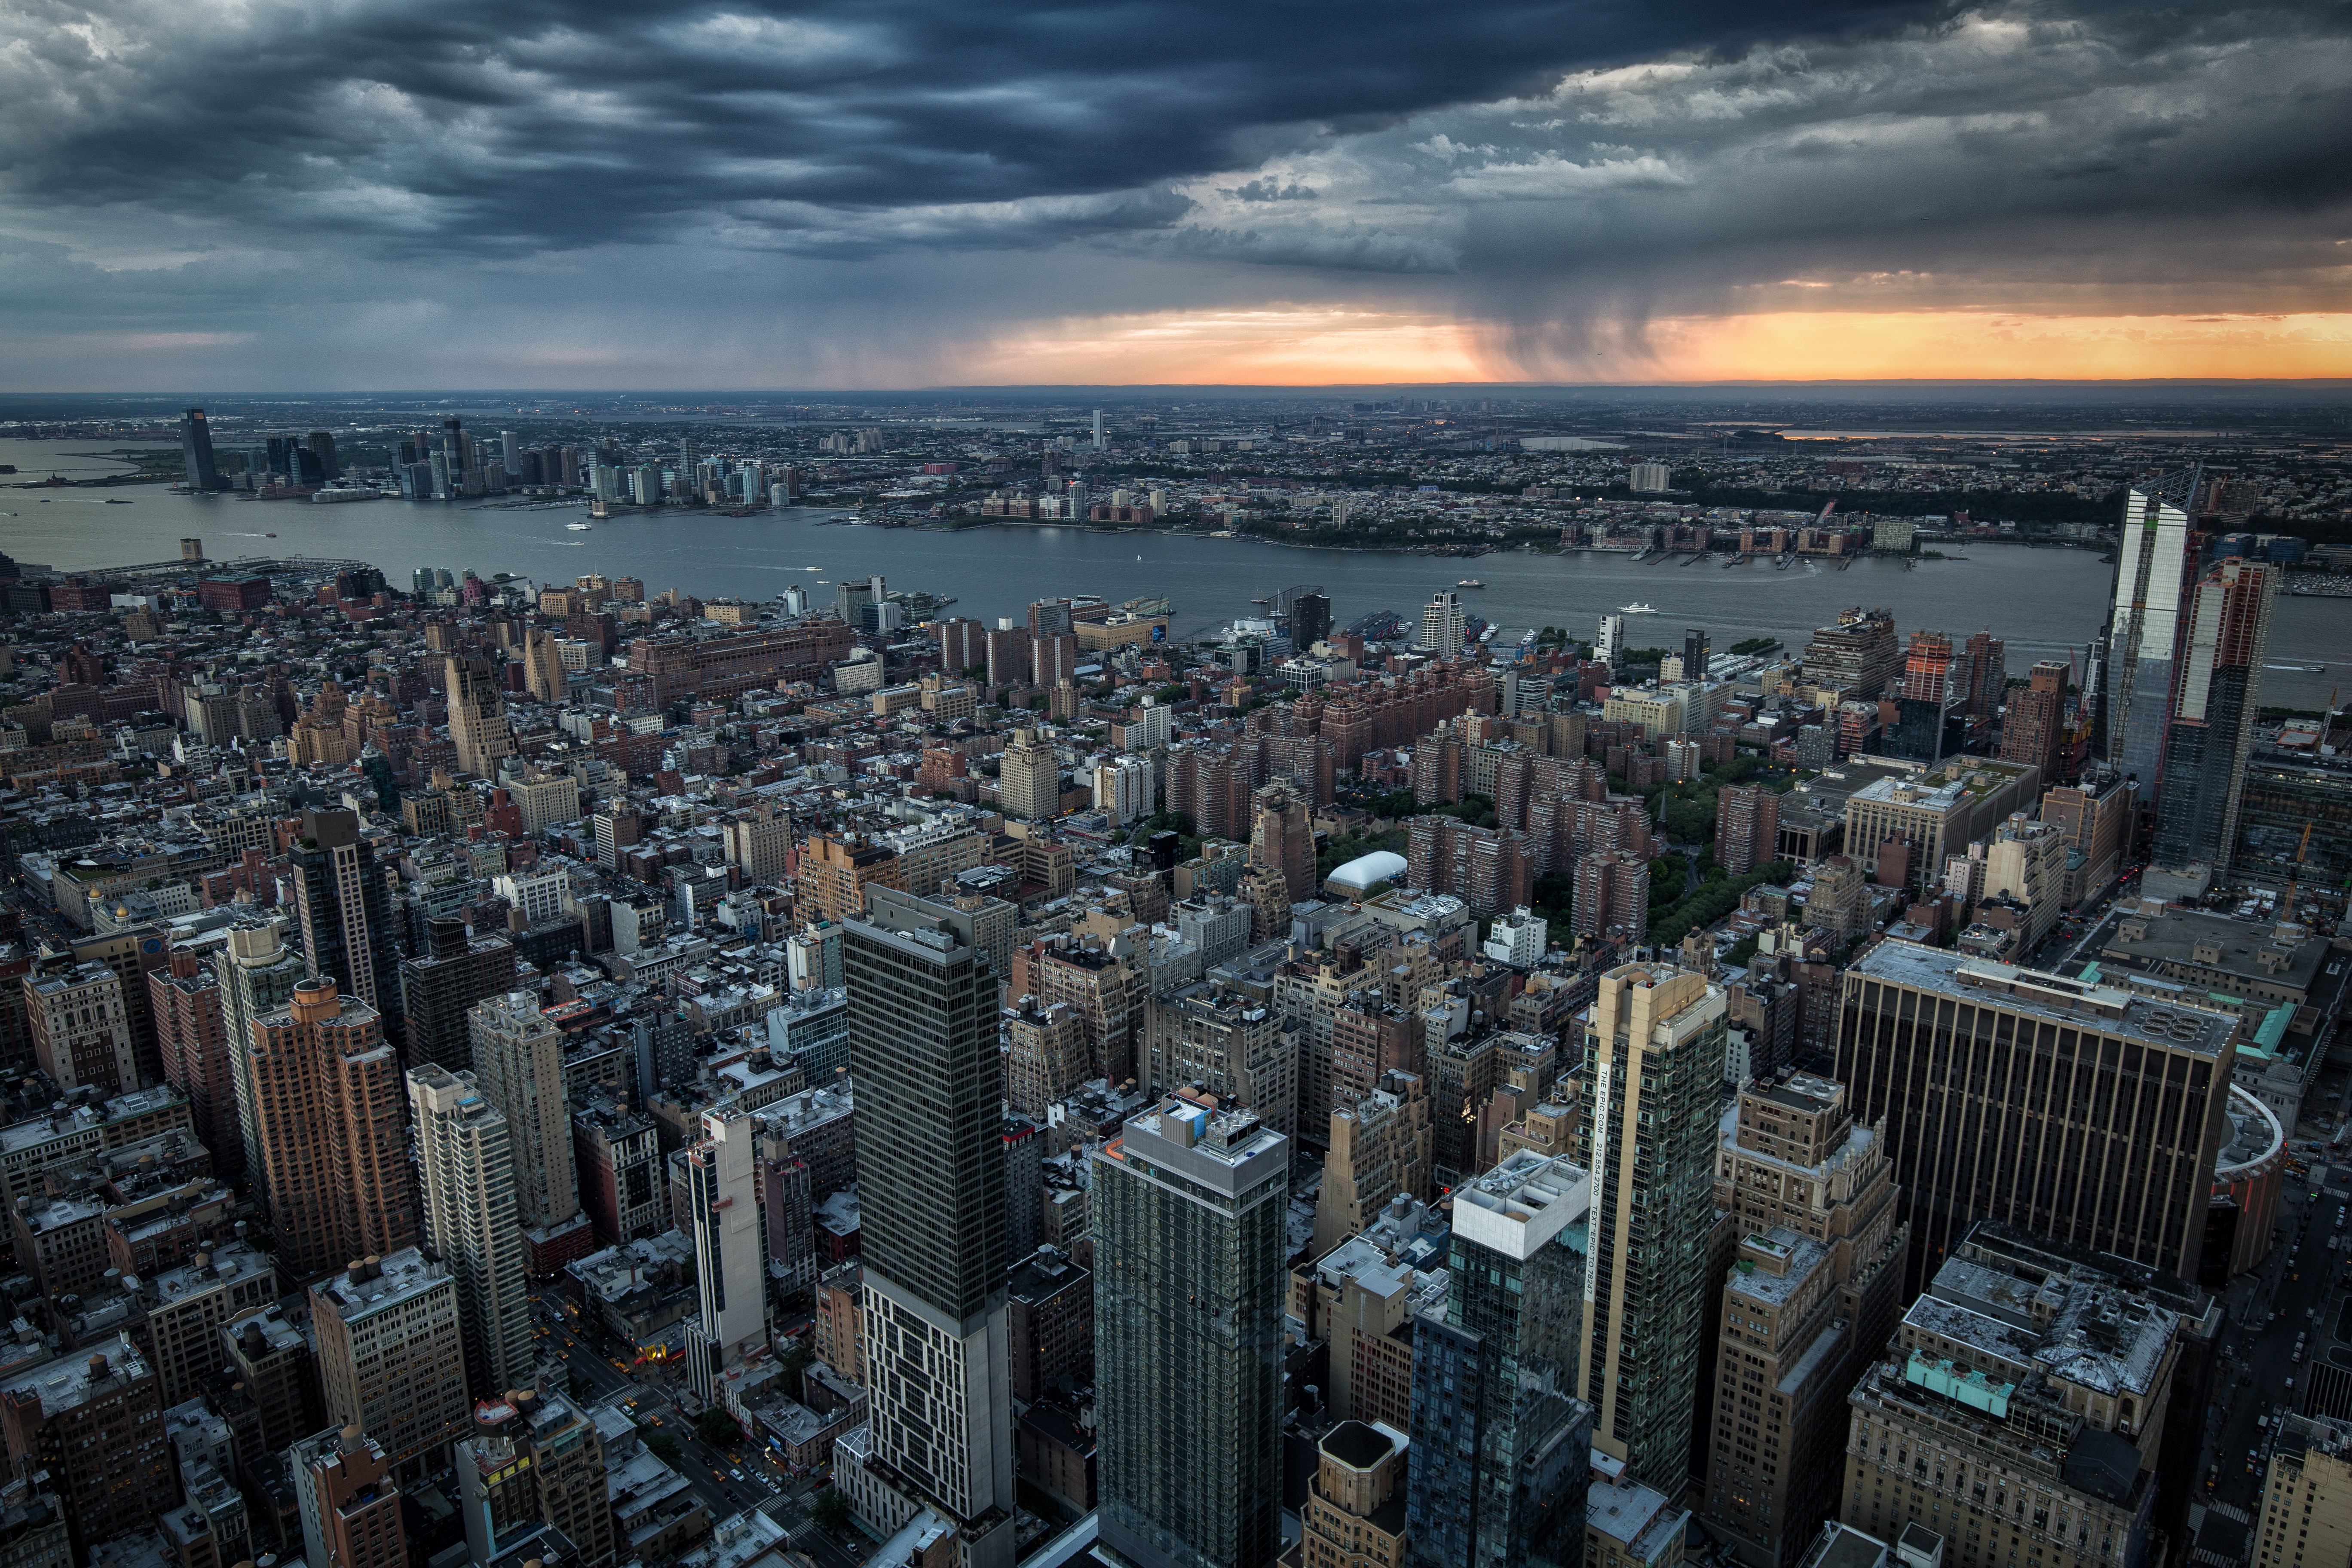 New York Sunset_27785144300_o